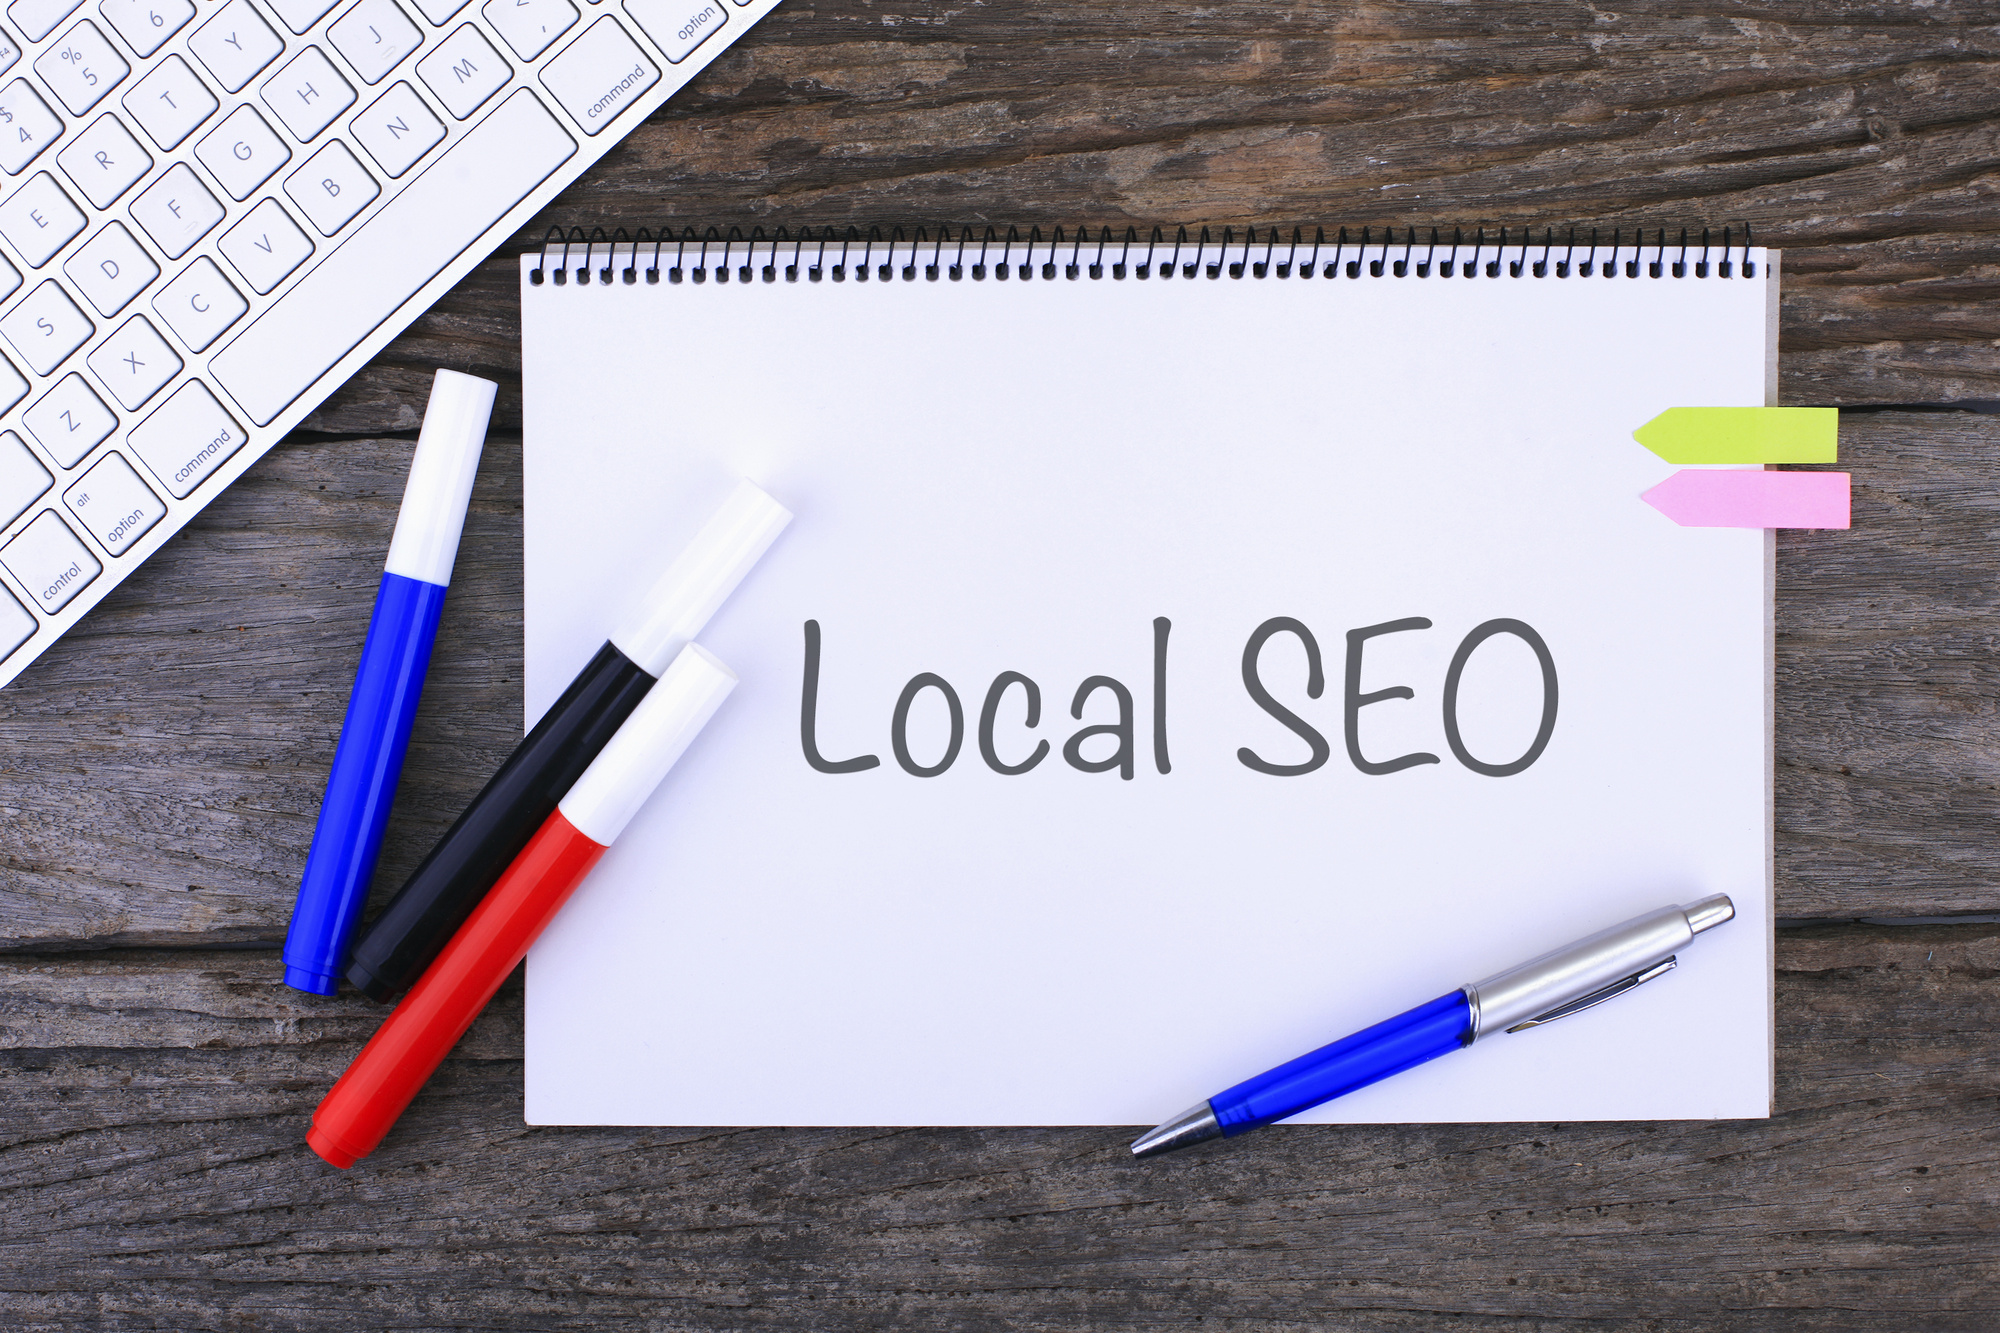 local seo for a small business